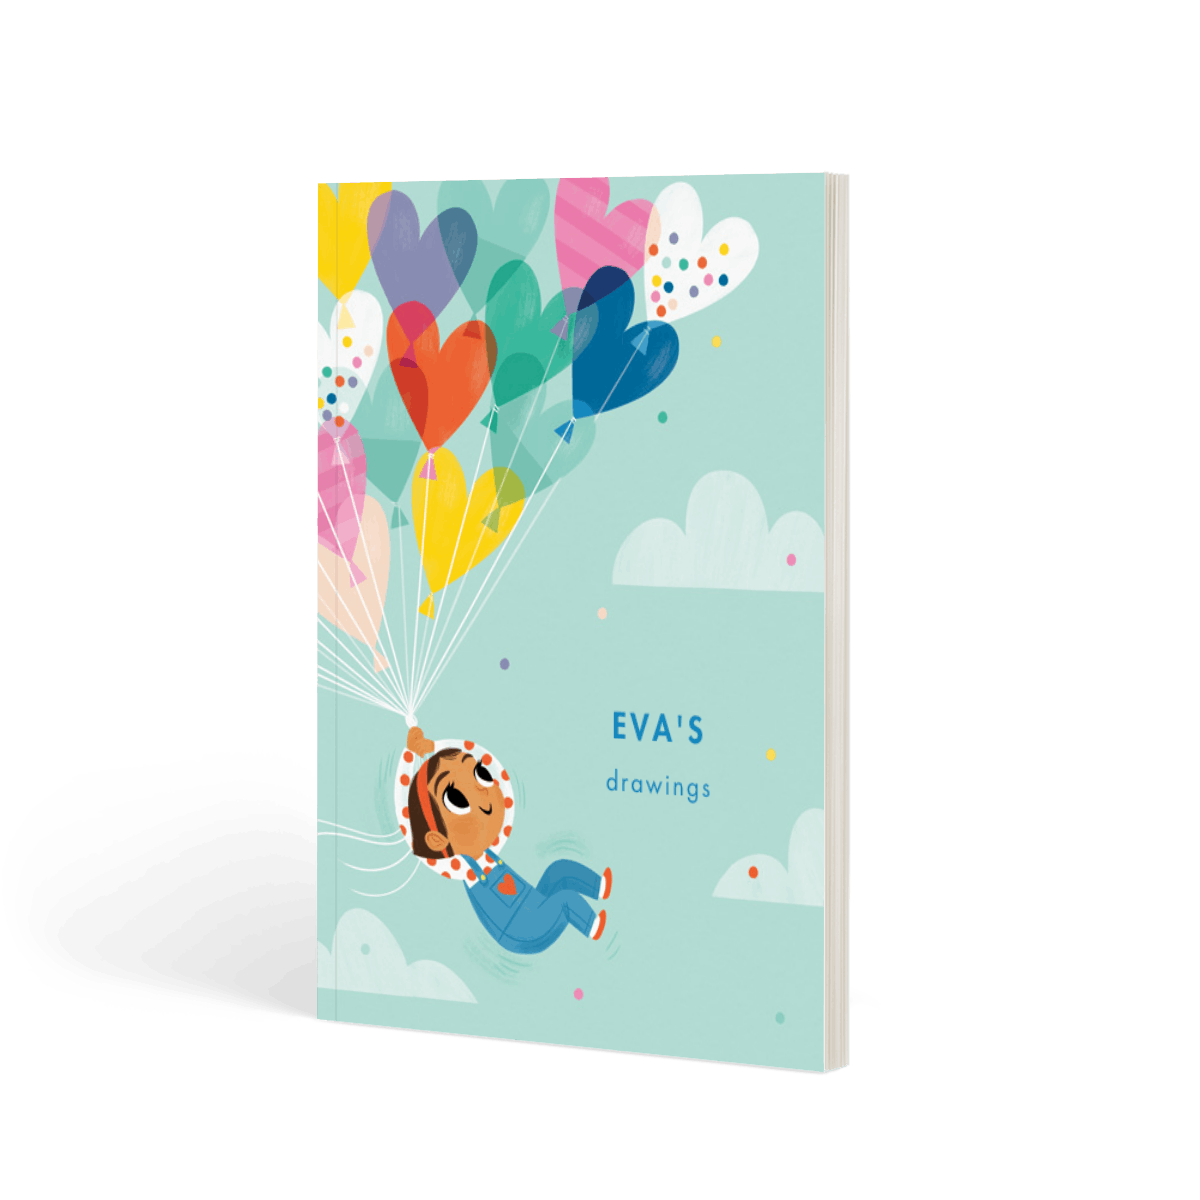 Https%3a%2f%2fwww.papier.com%2fproduct image%2f31697%2f3%2fballoon girl ii 7963 front 1511523272.png?ixlib=rb 1.1